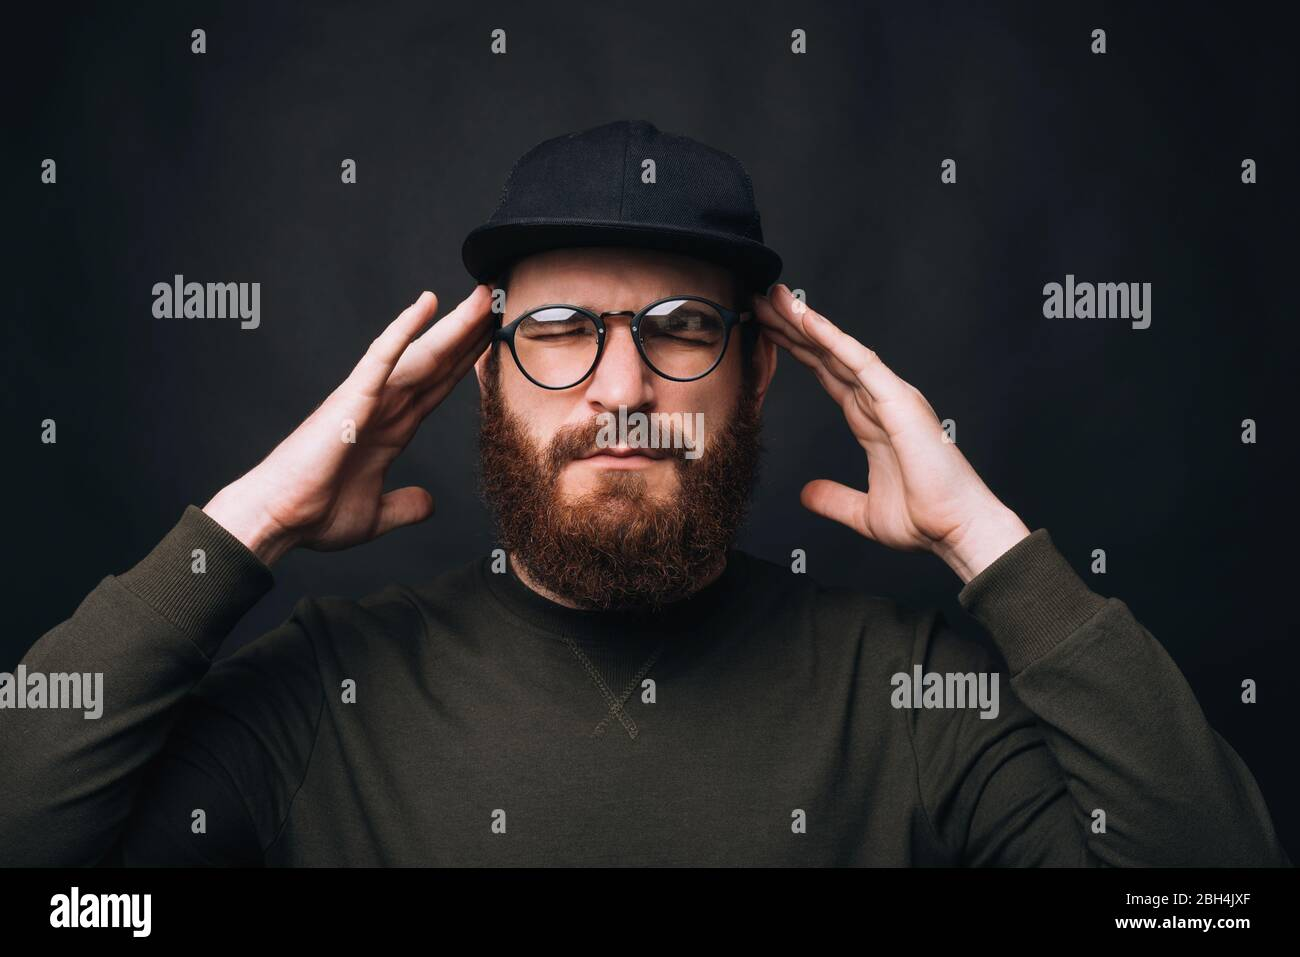 Concentrate. My head hurts. I am having a headache. Bearded man with eyes closed touching head on black background. Stock Photo